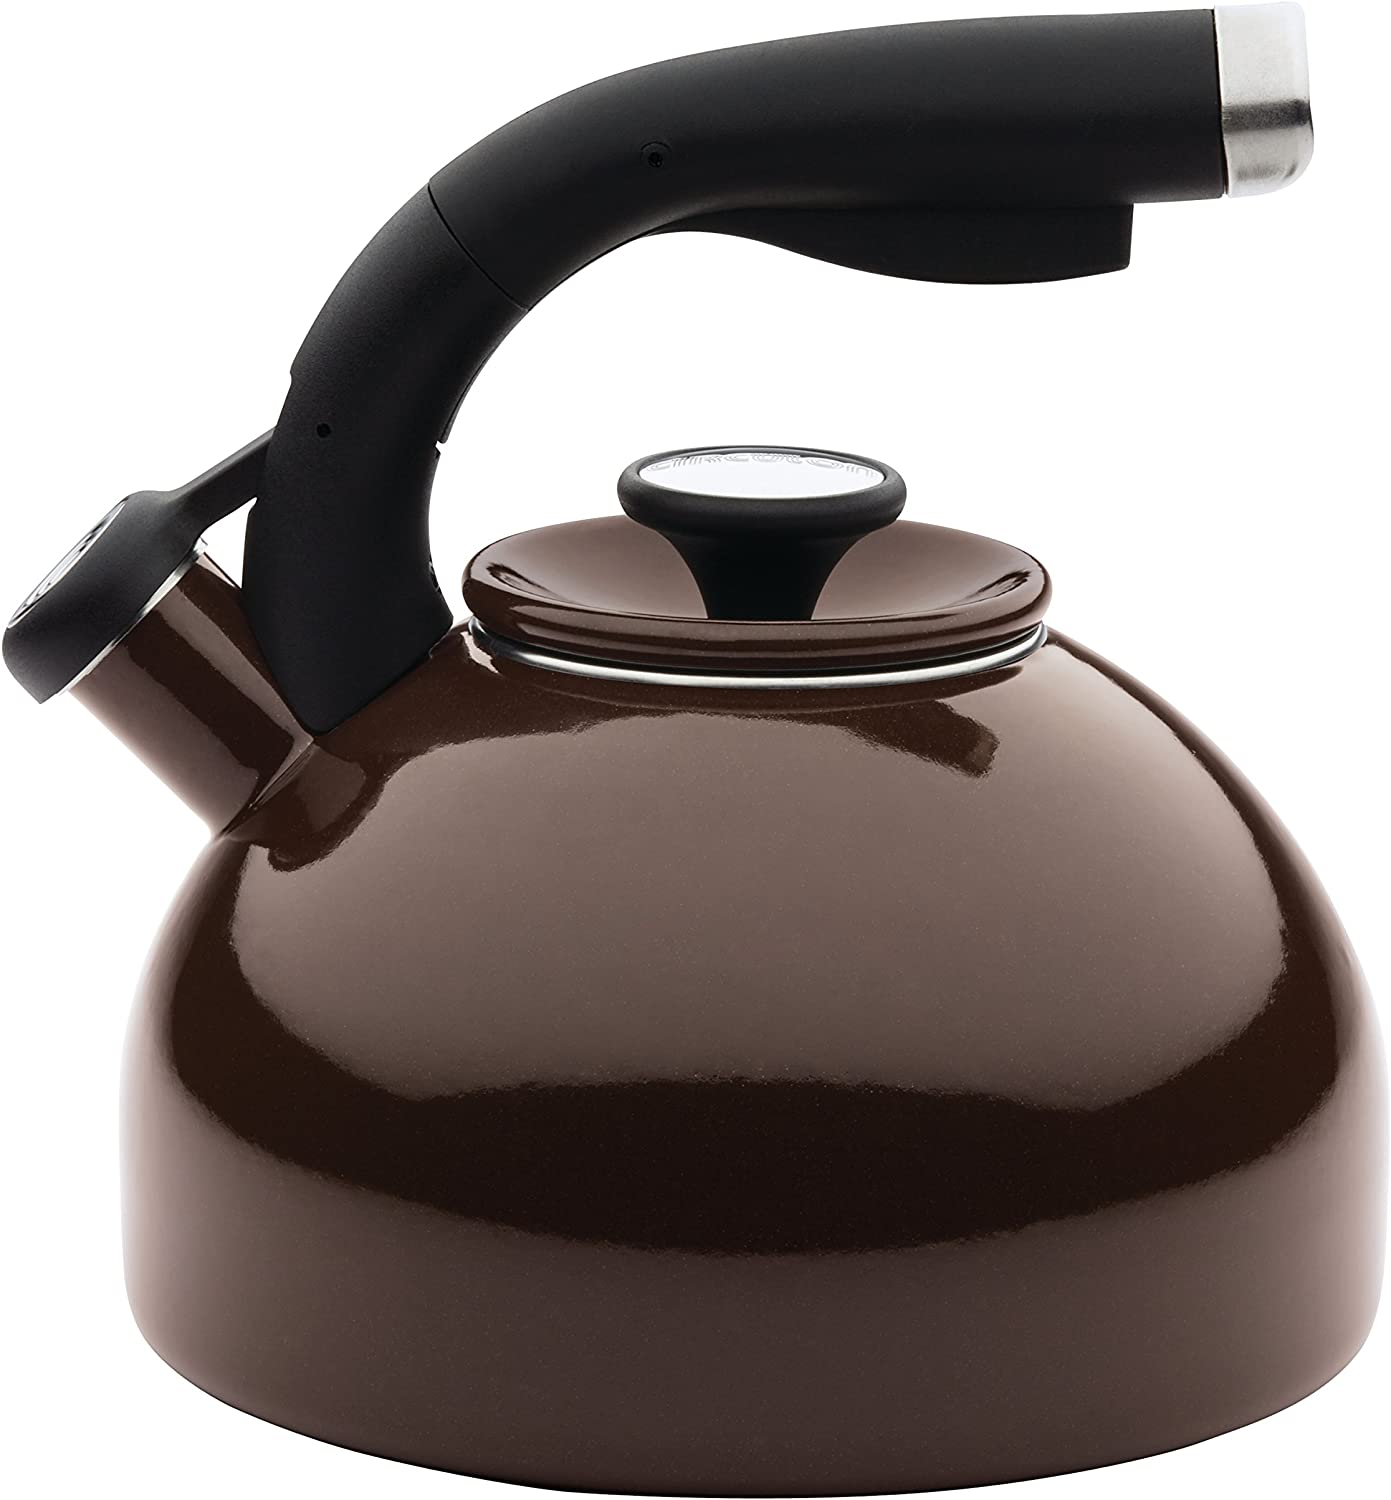 Circulon Morning Bird Whistling Kettle/Stovetop Teakettle/Tea Pot, 2 Quart, Chocolate